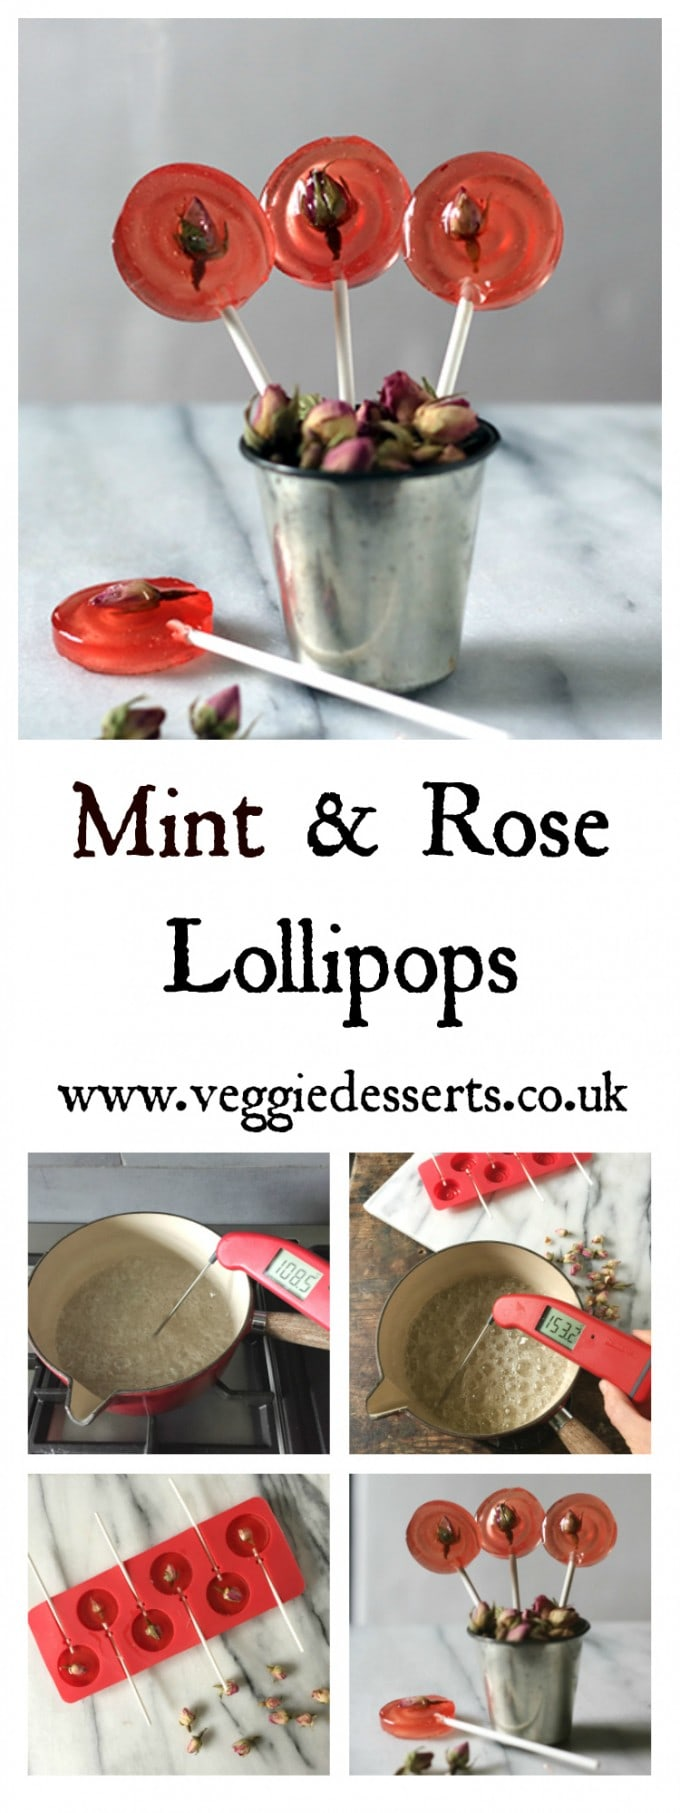 These mint and rose lollipops are surprisingly easy to make, with just a few ingredients. They're a wonderful DIY food gift or Valentine's present. #mothersday #valentinesday #ediblegift #lollipops #lollipoprecipe #easter